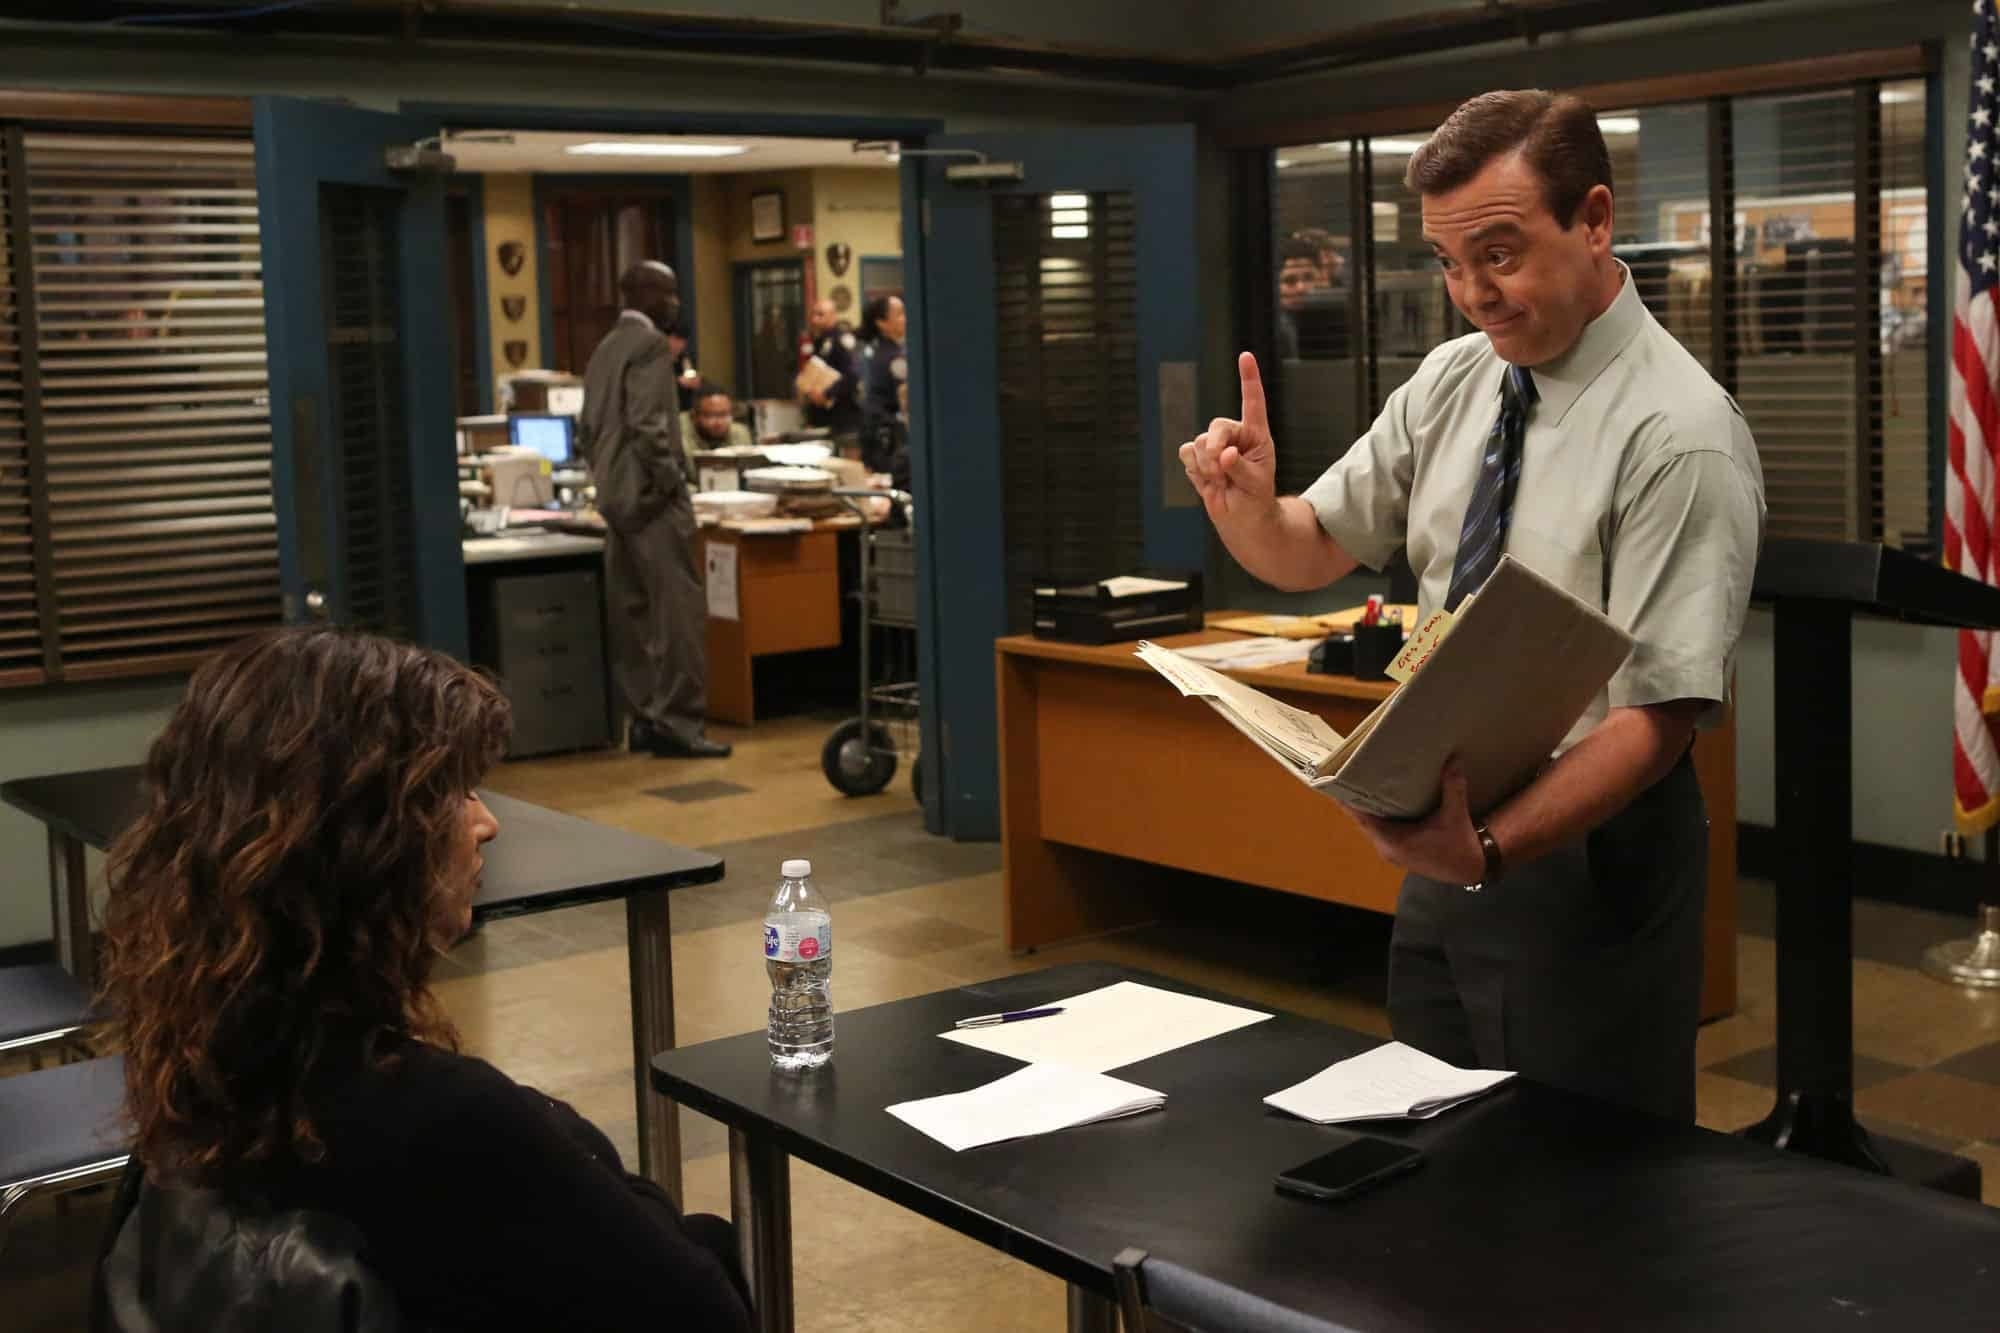 Brooklyn Nine-Nine Season 6 Episode 3: Summary, Images, and